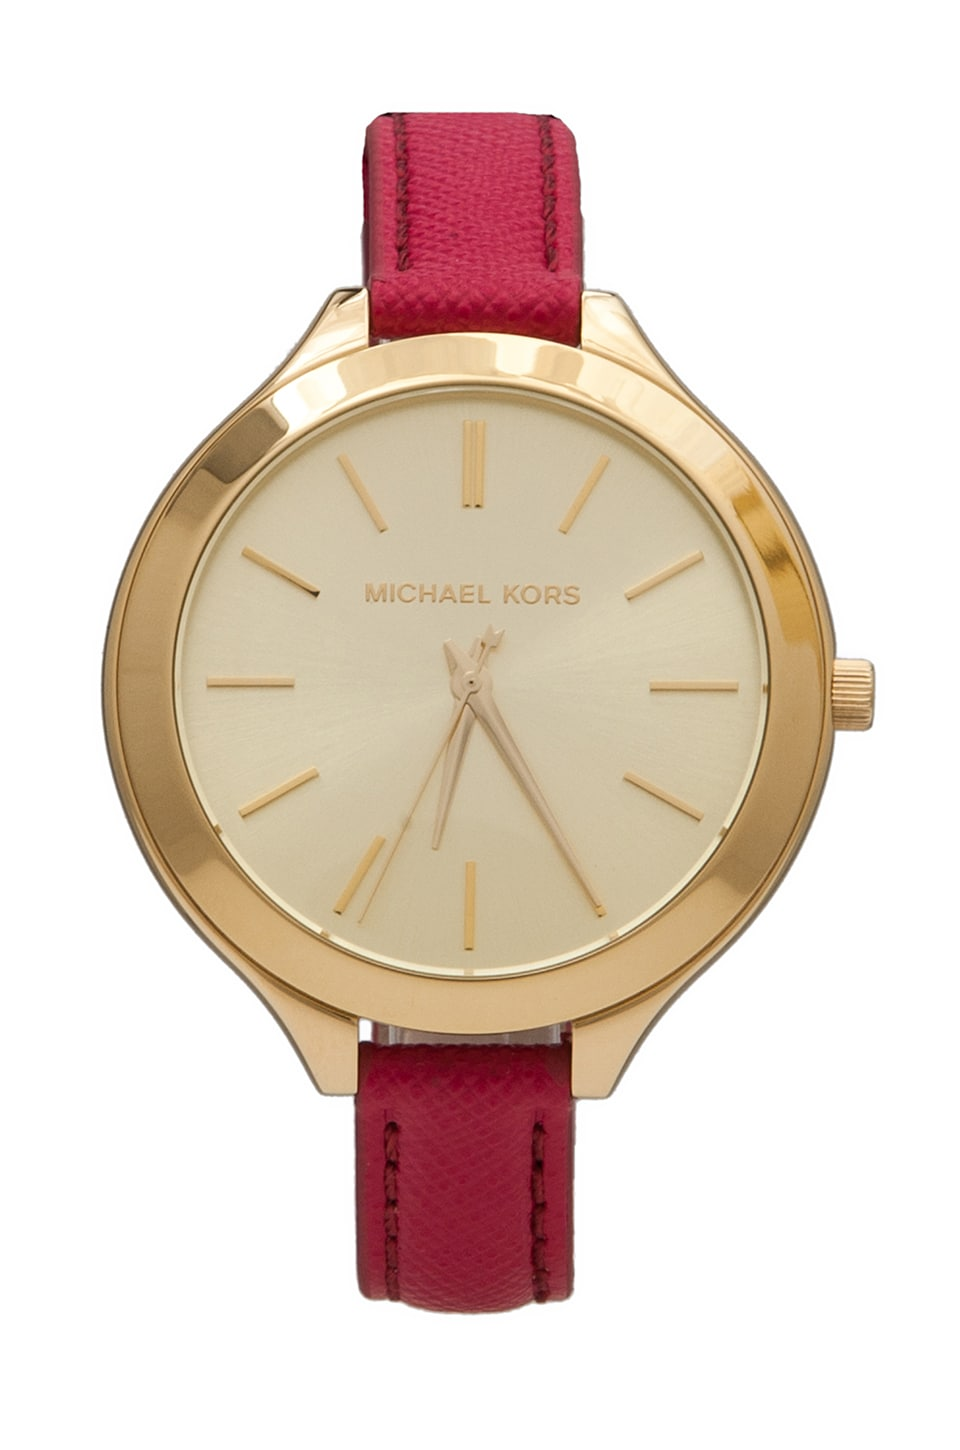 Michael Kors Slim Runway Watch in Pink